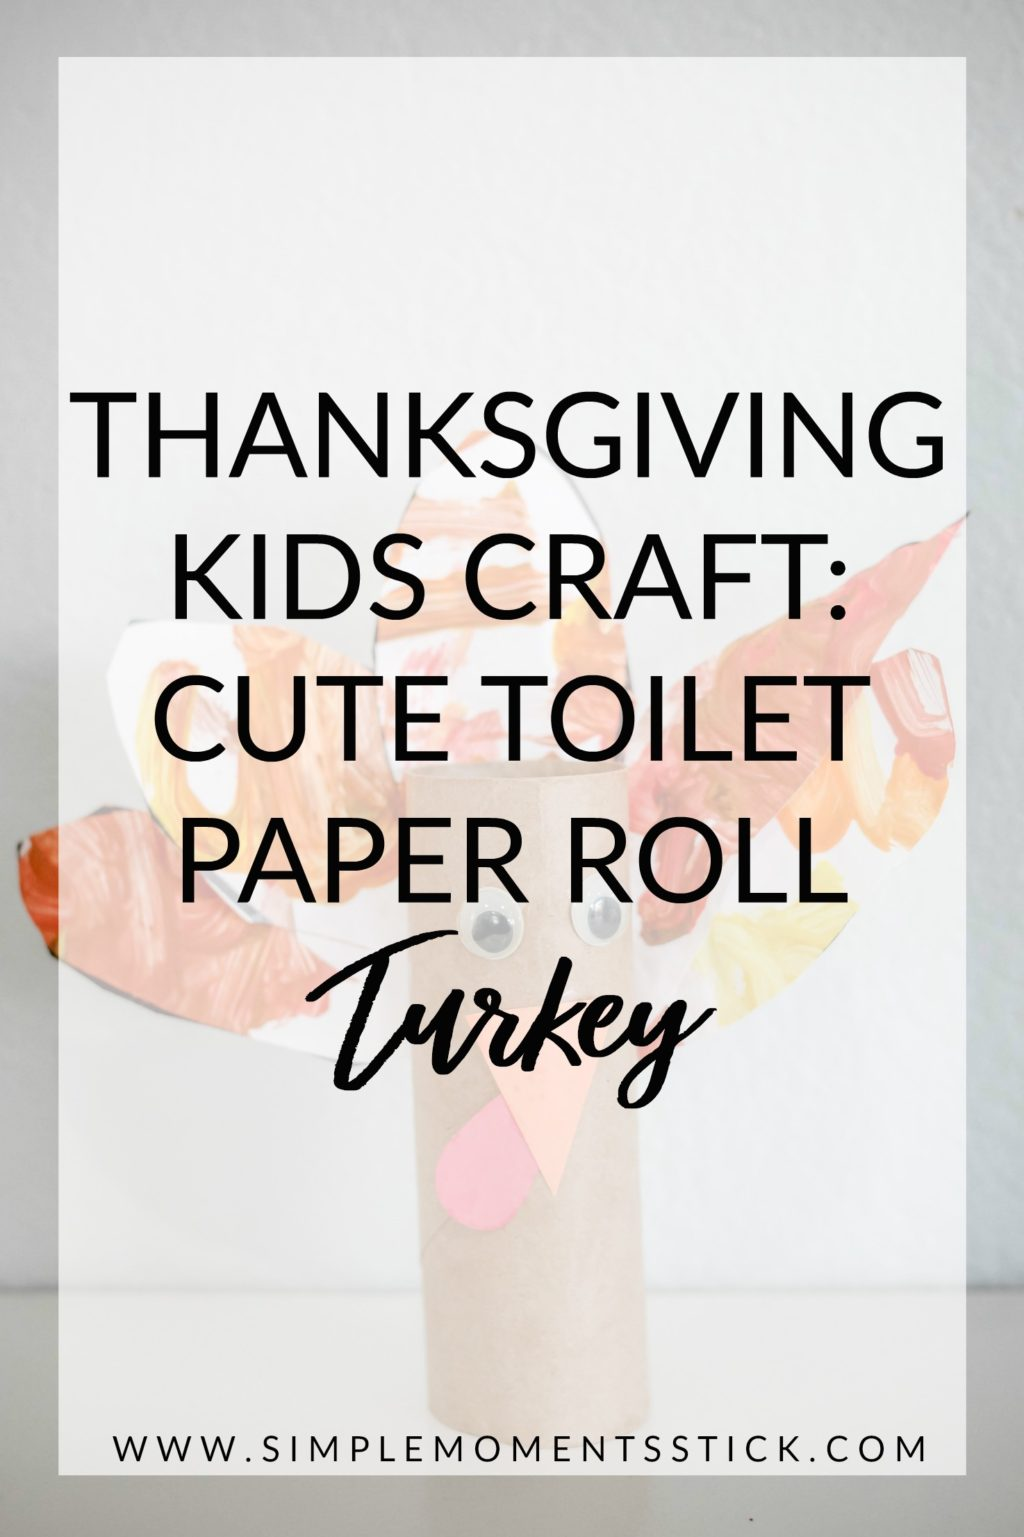 Super adorable crafts with toilet paper rolls for Thanksgiving